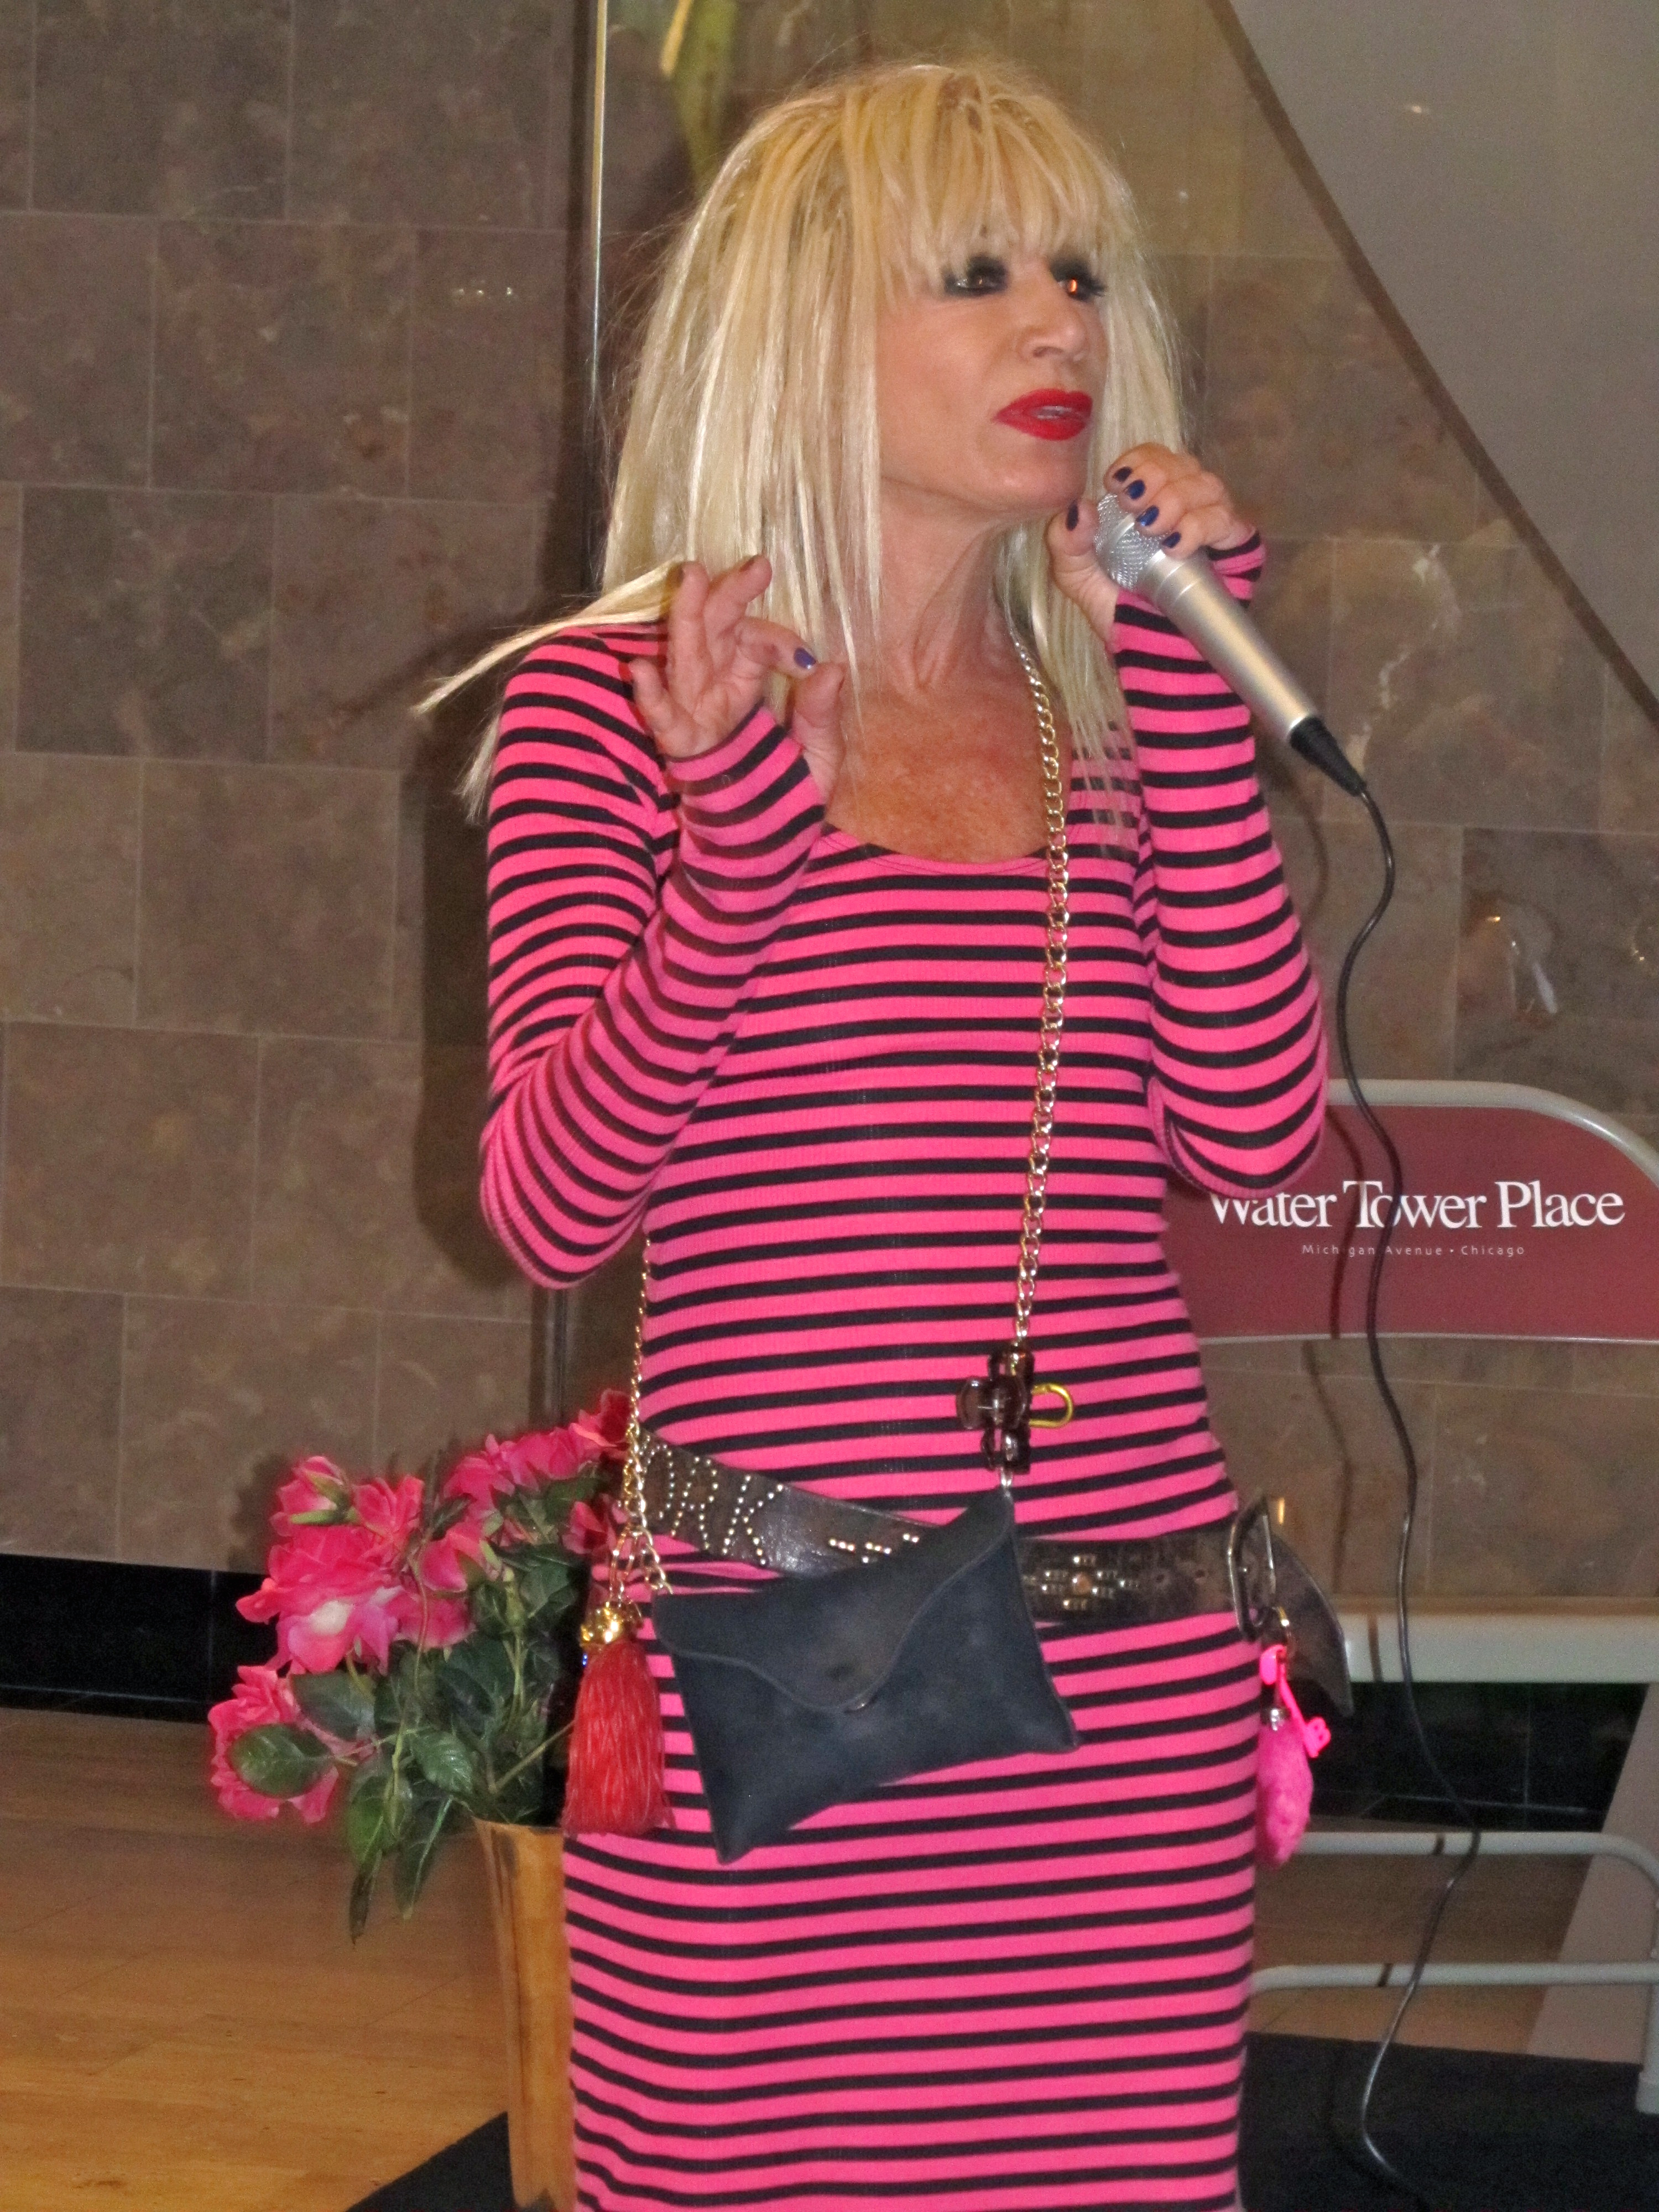 c9ea2afb050 Betsey Johnson Live at Betsey Johnson Water Tower